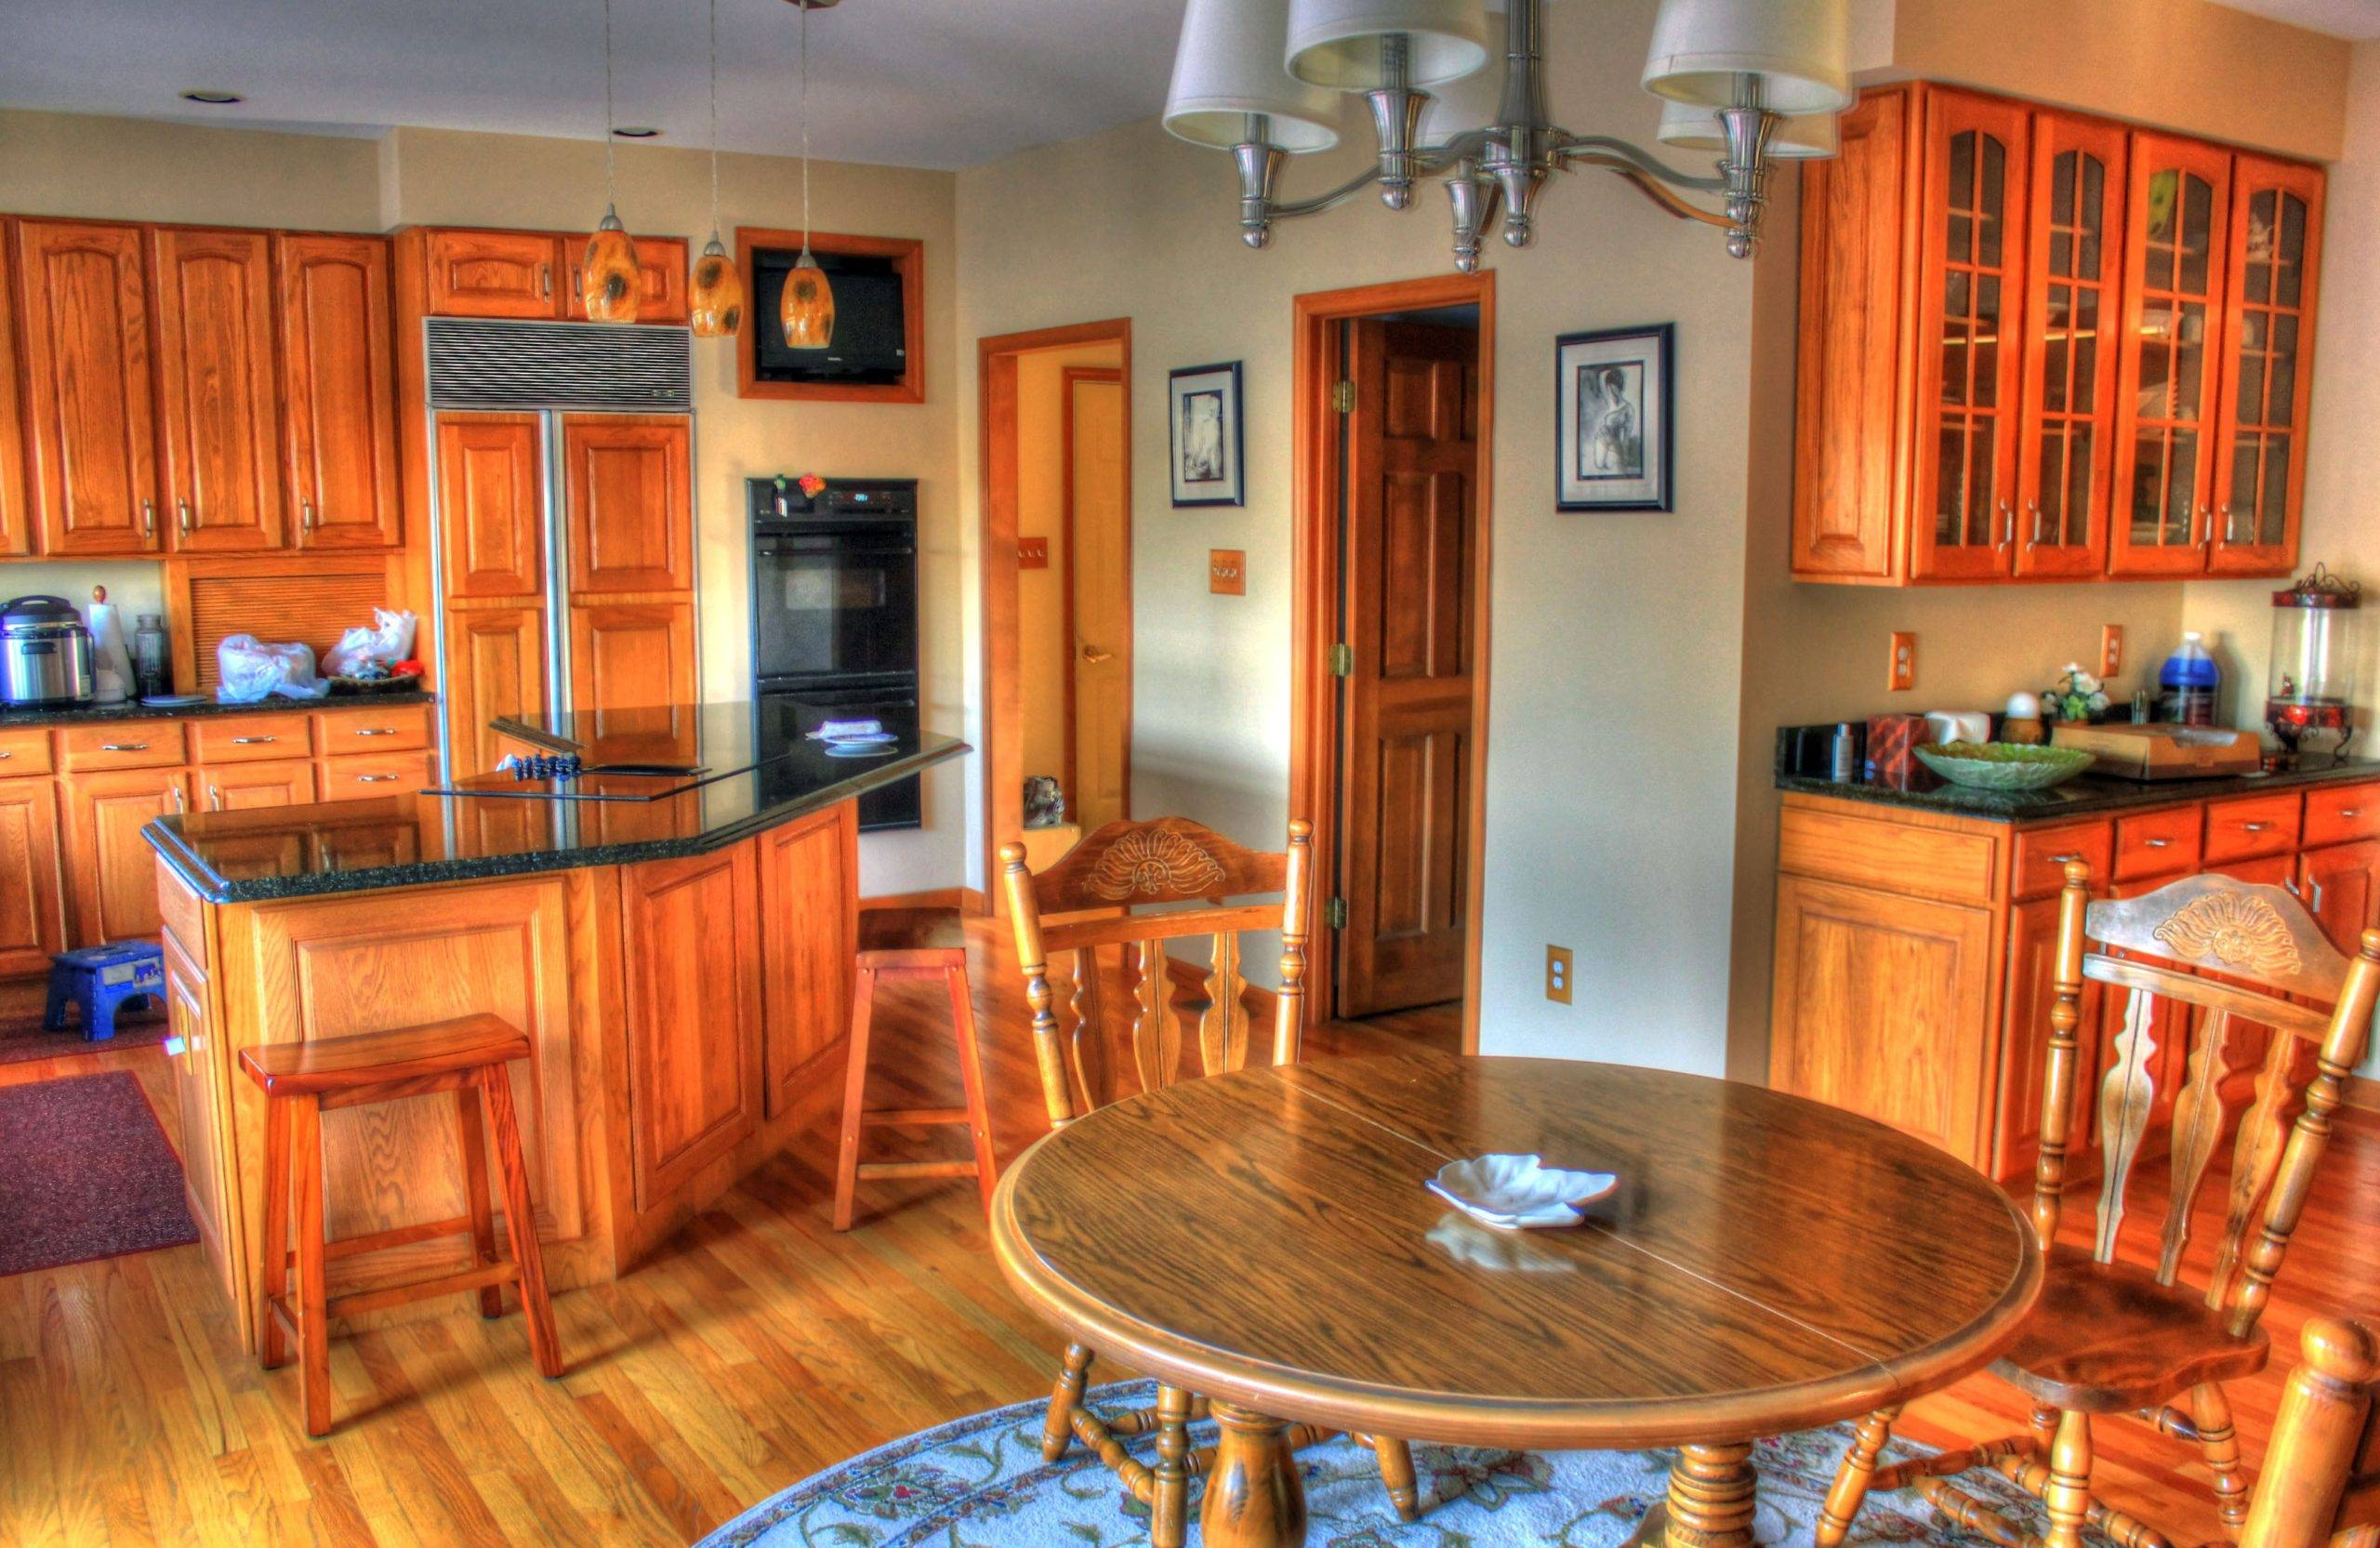 Home interior in hardwood with table and chairs